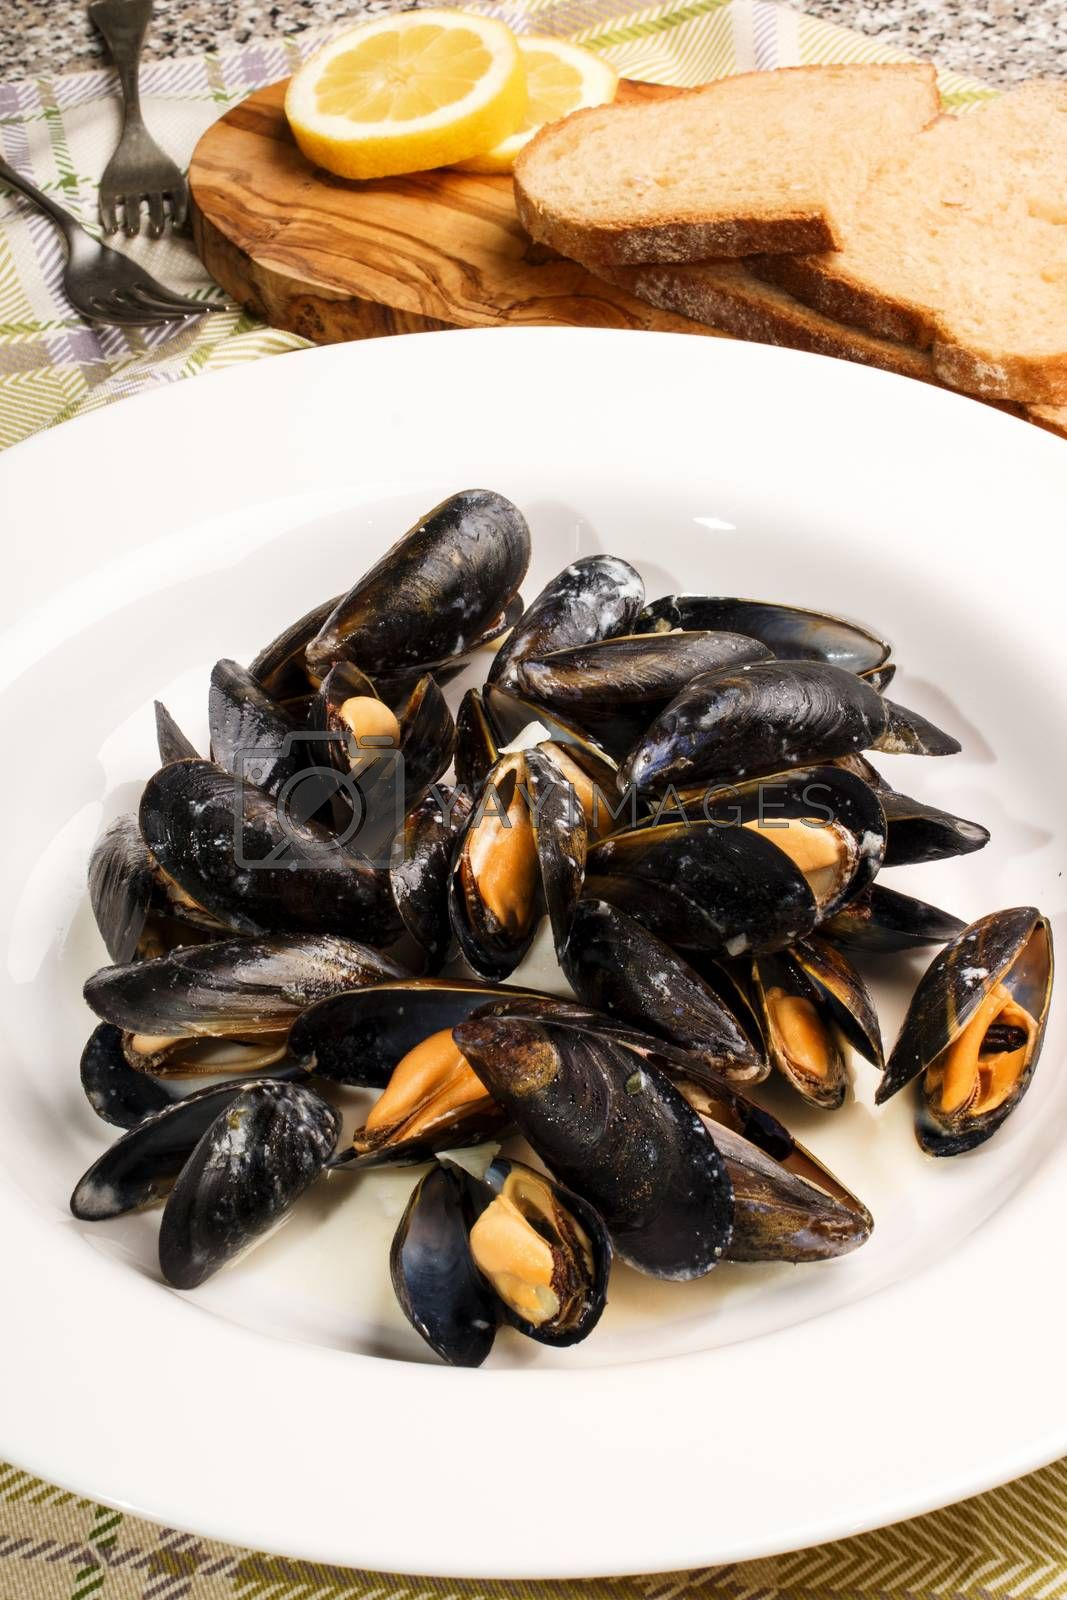 mussels with garlic and butter sauce in a deep plate with bread and slice lemon